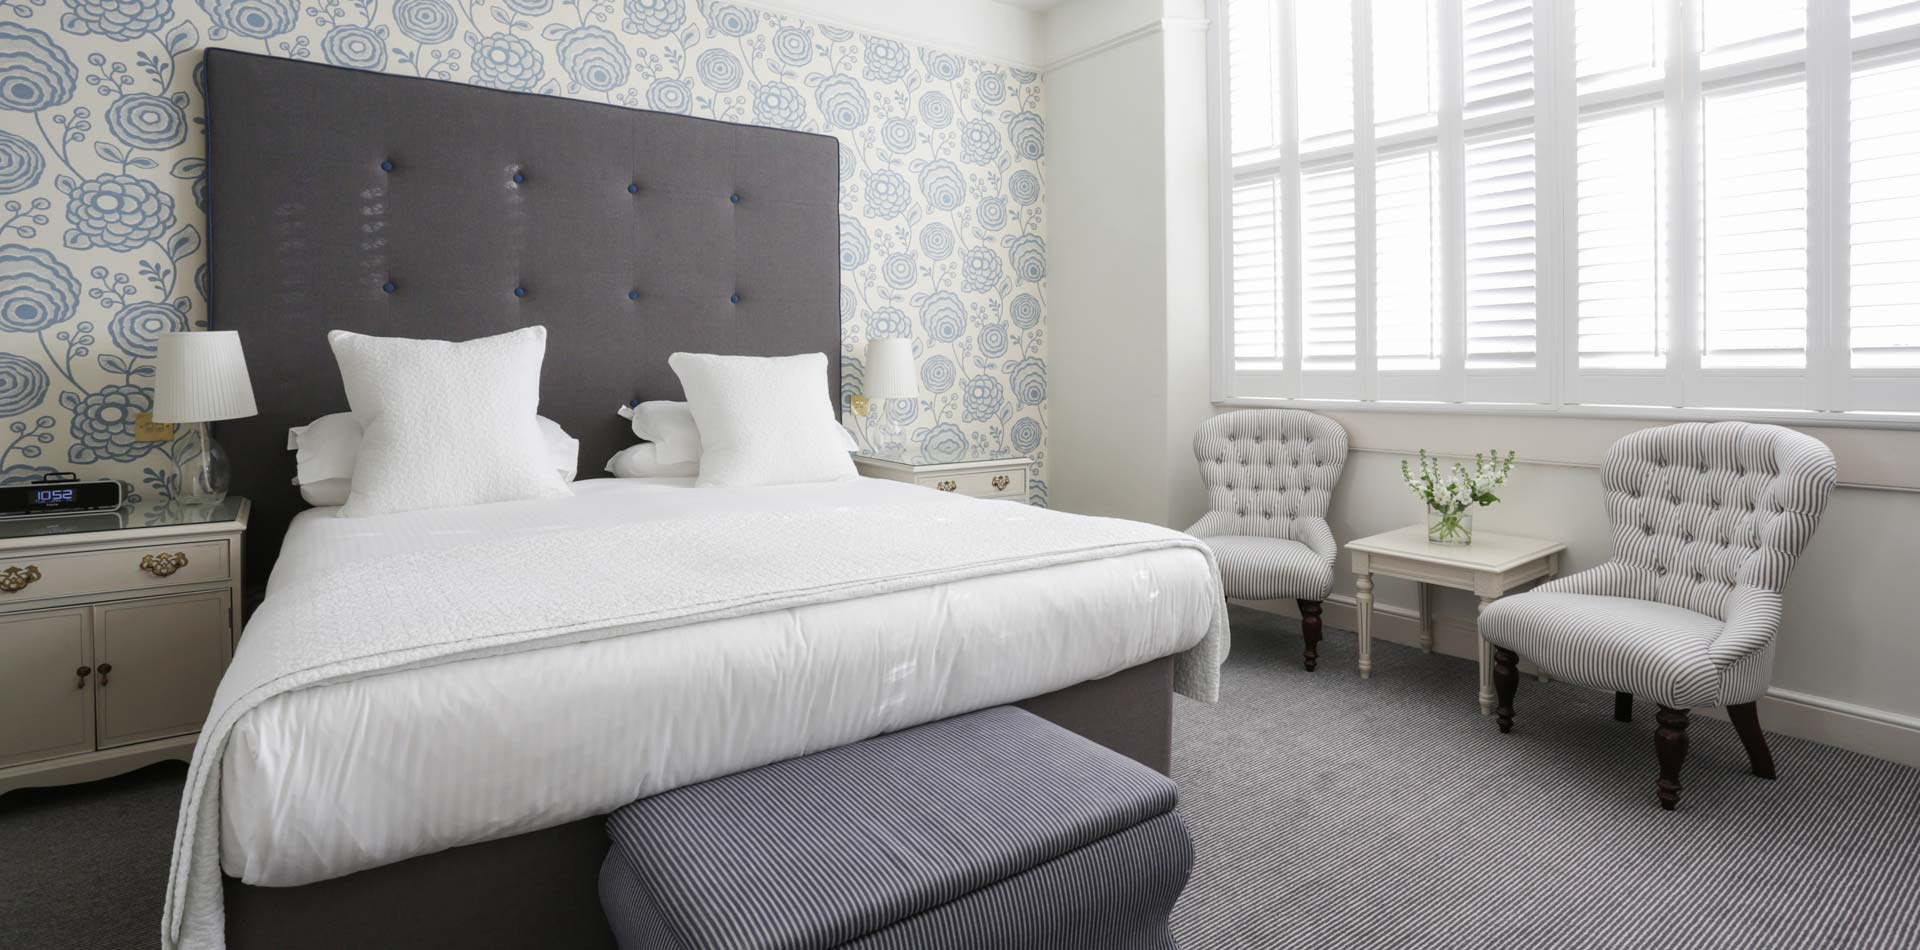 Villa Magdala, luxury b&b, bath, VIA From the Poolside blog on boutique hotels for family holidays